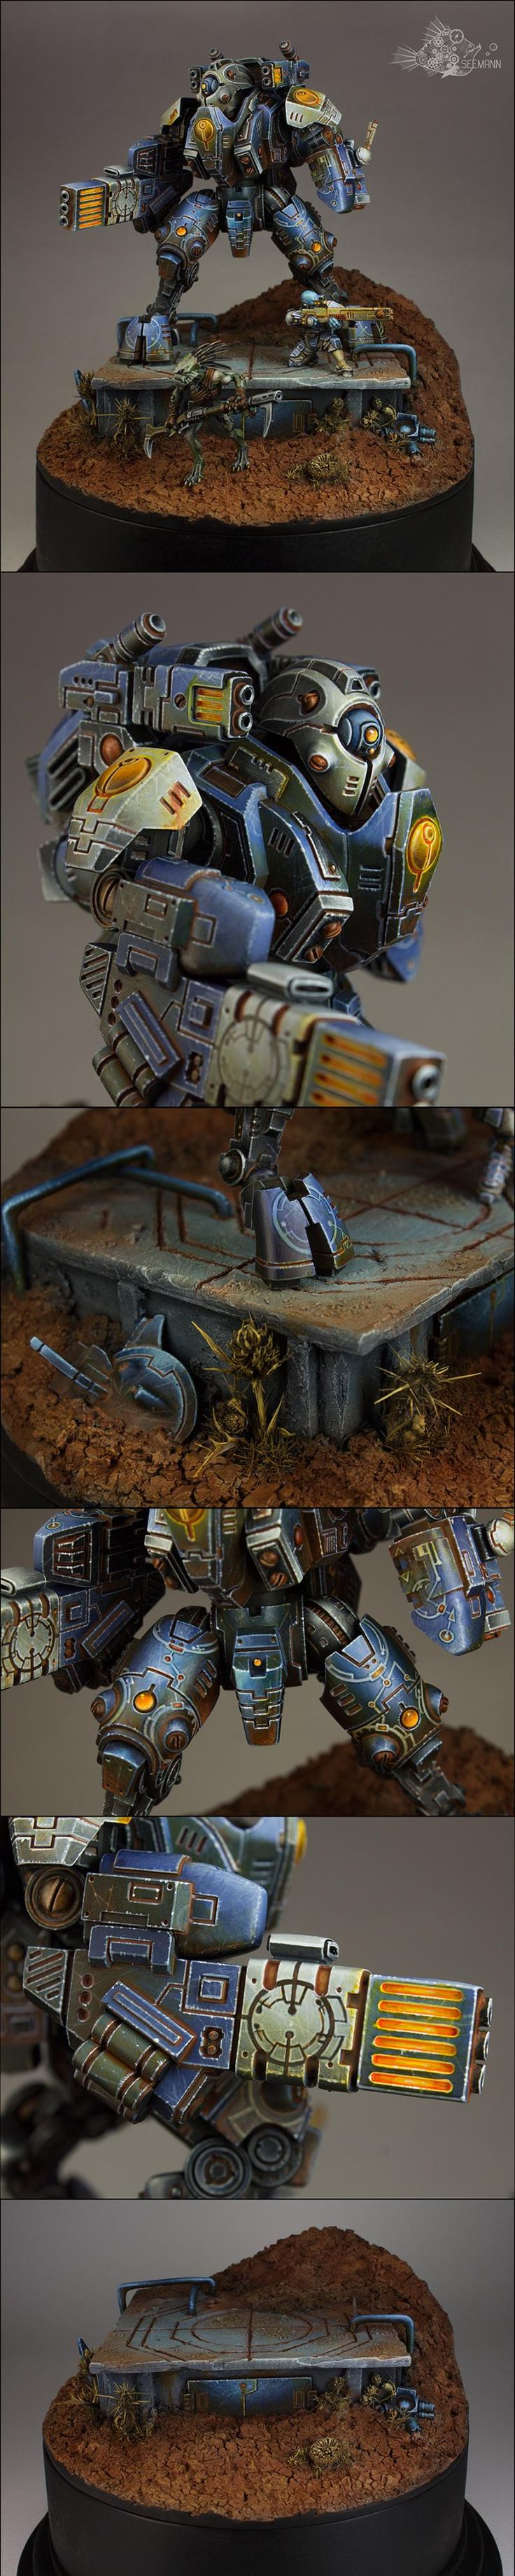 Diorama, Fire Warriors, Ghostkeel, Tau, Warhammer 40,000 - XV95 Ghostkeel Battlesuit - Gallery - DakkaDakka | Brace for Impact!